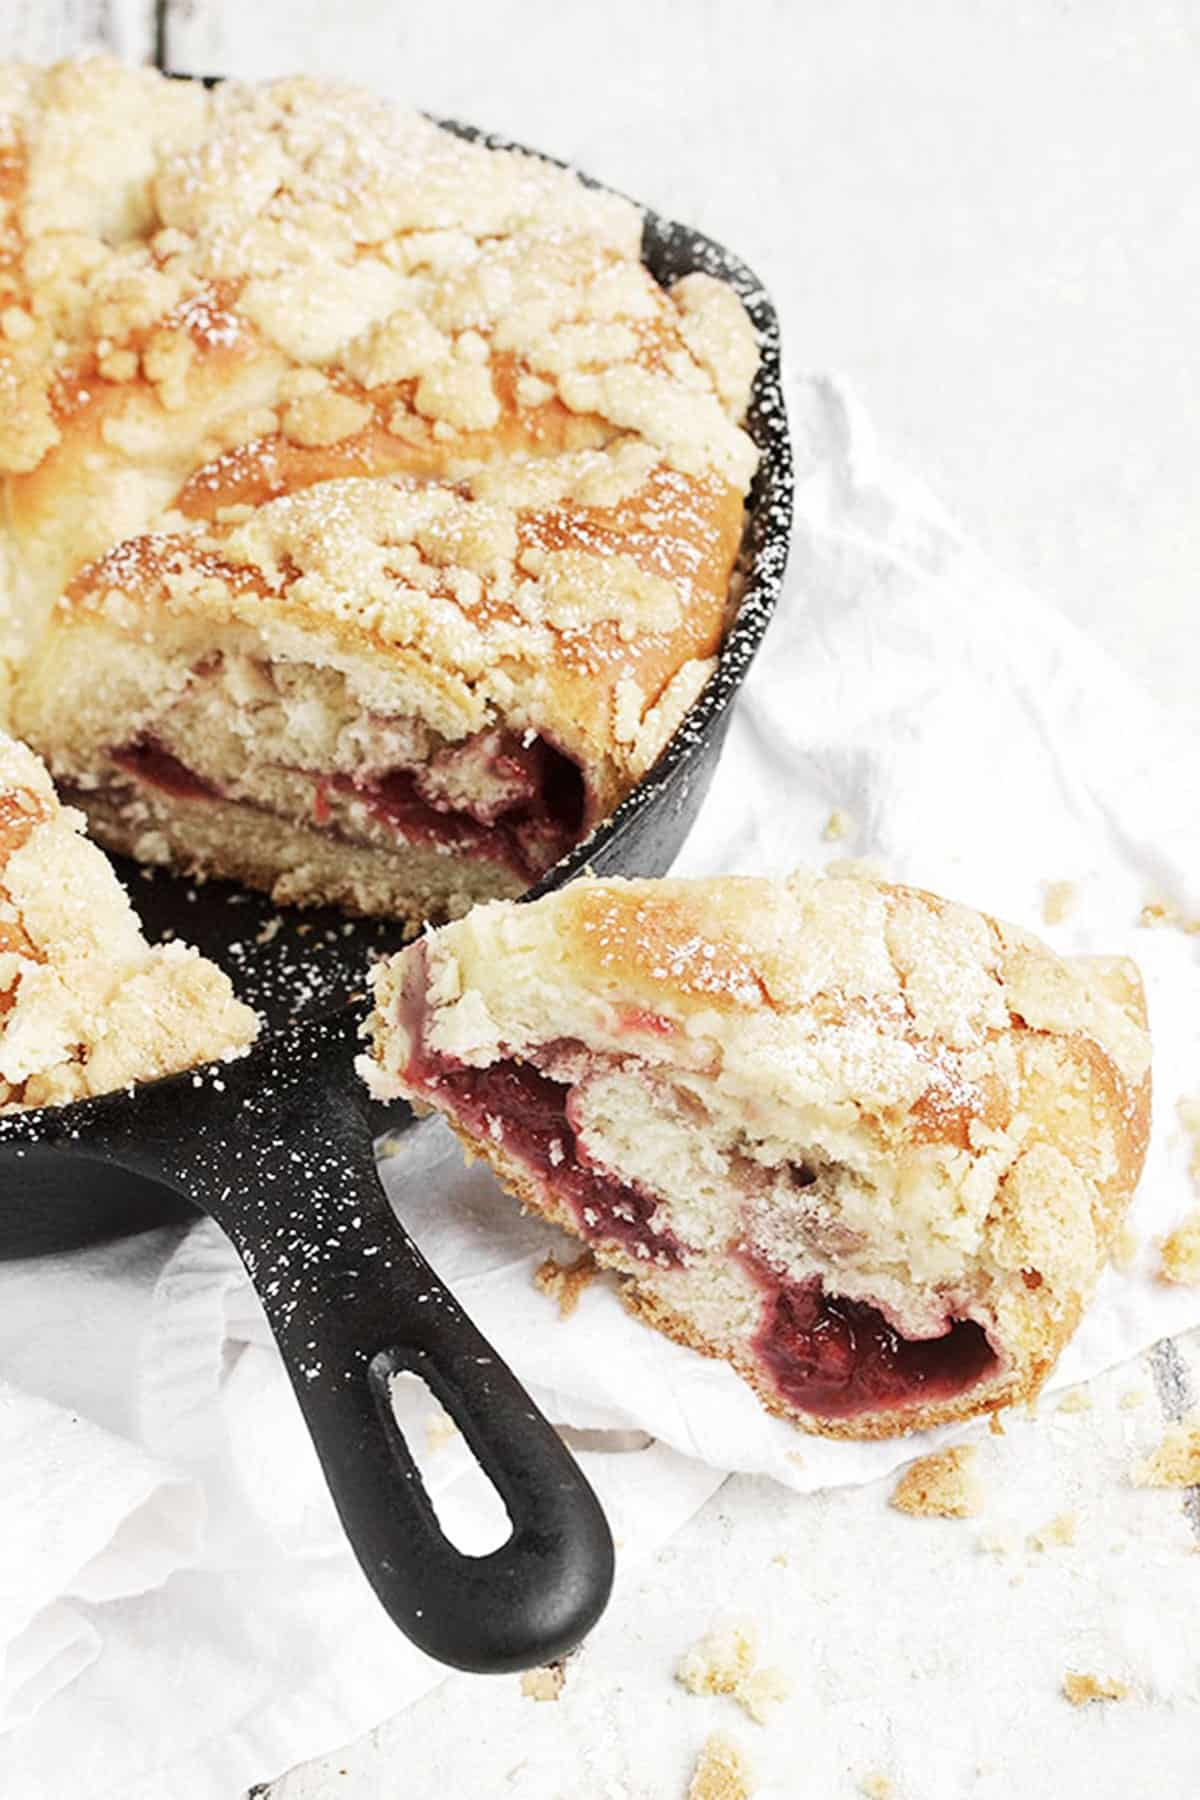 strawberry filled yeast bread baking in a skillet